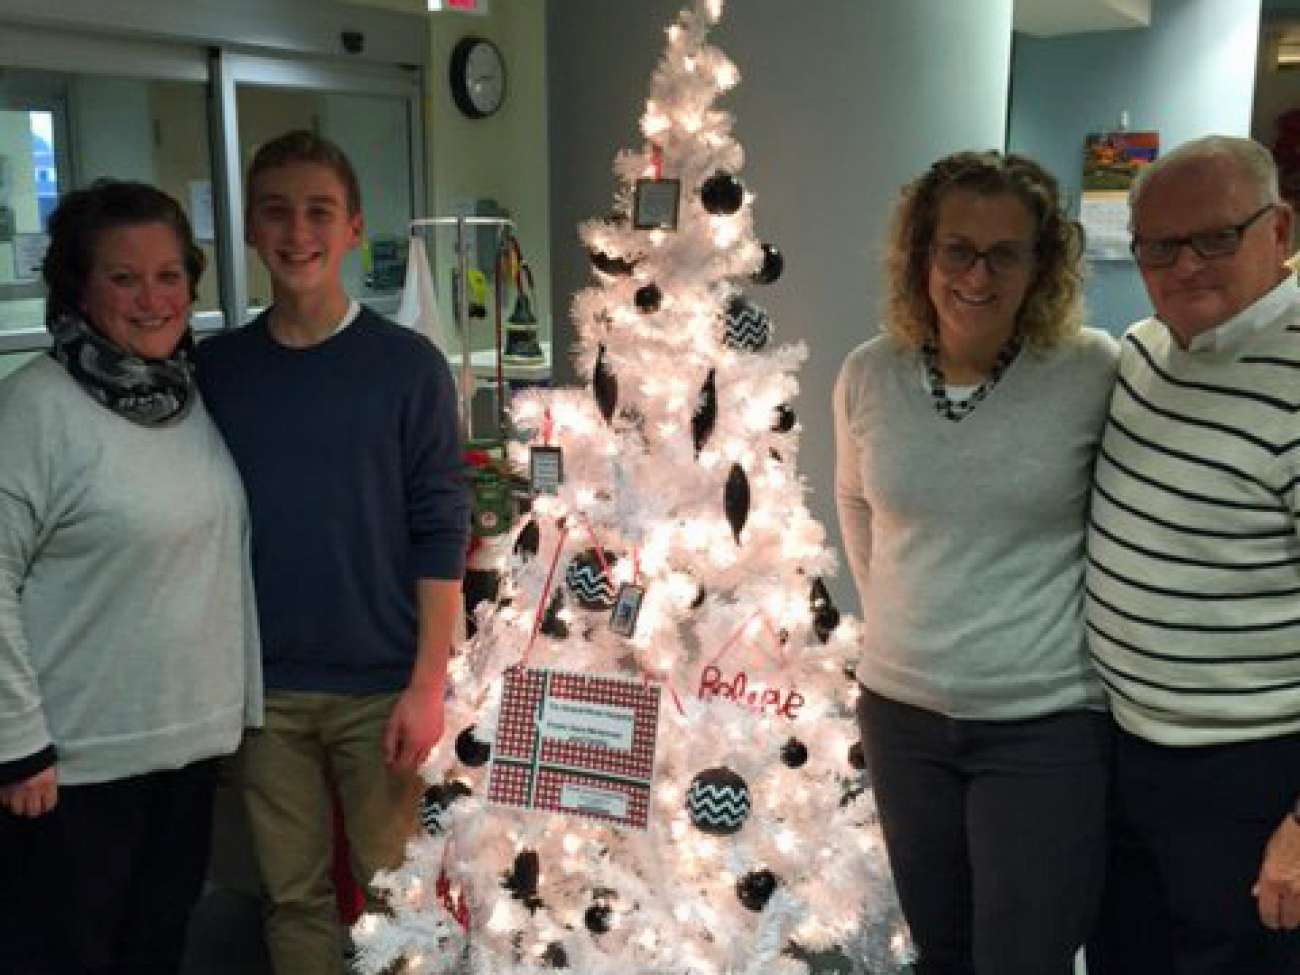 The people who made the tree happen include (left to right) Blake's mom Heather McLennan, Blake, his aunt Sara McLennan and his grandfather John McLennan